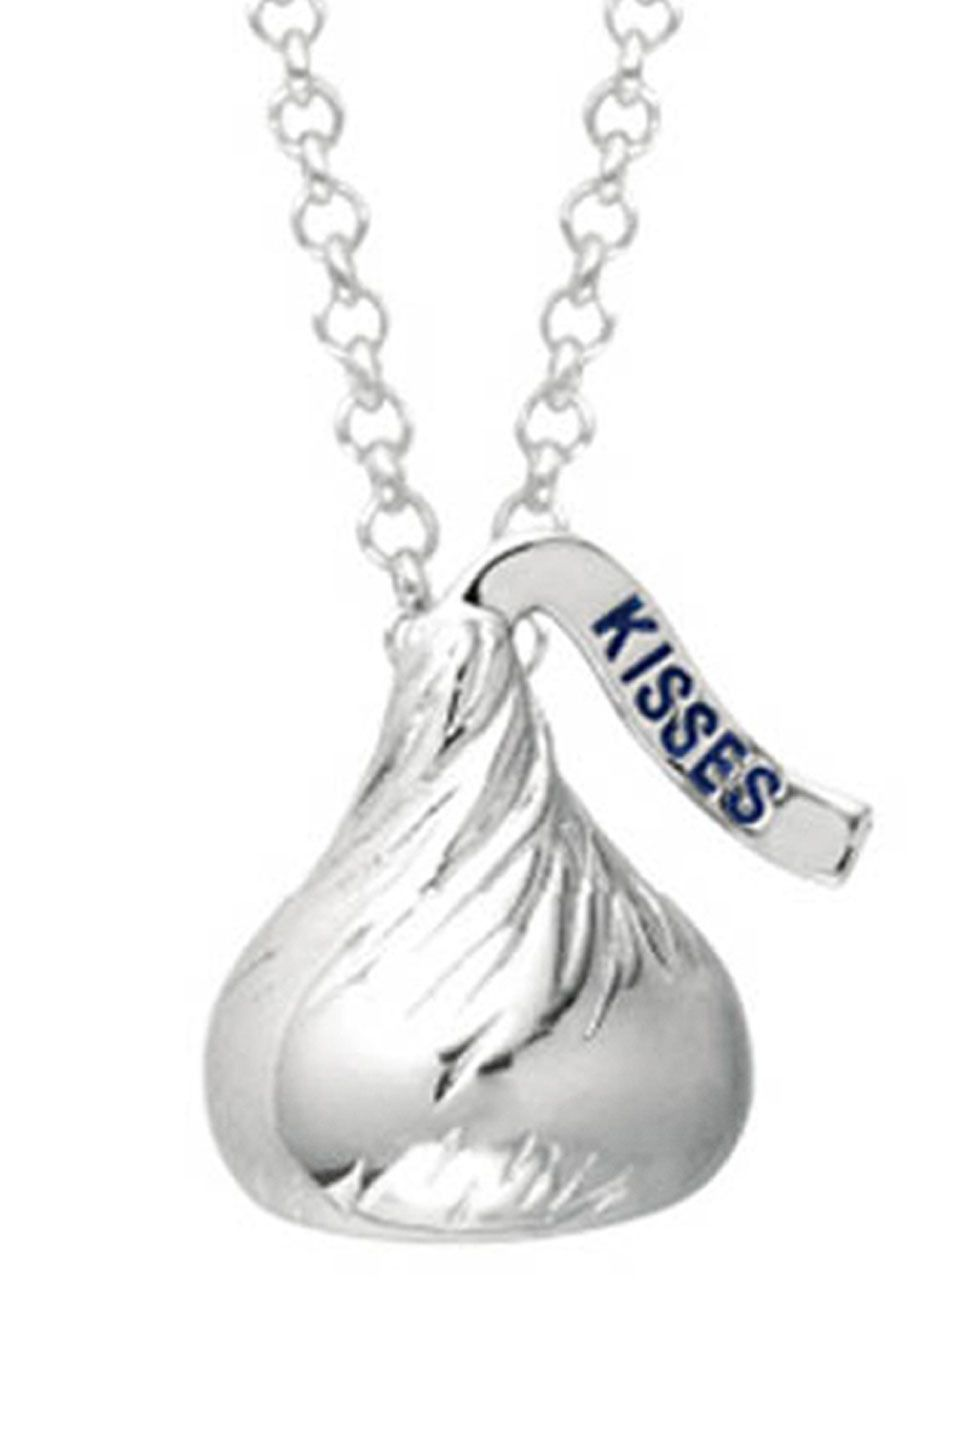 Hershey kisses pendant sterling silver necklace jewelry jubilee hershey kisses pendant sterling silver necklace mozeypictures Image collections